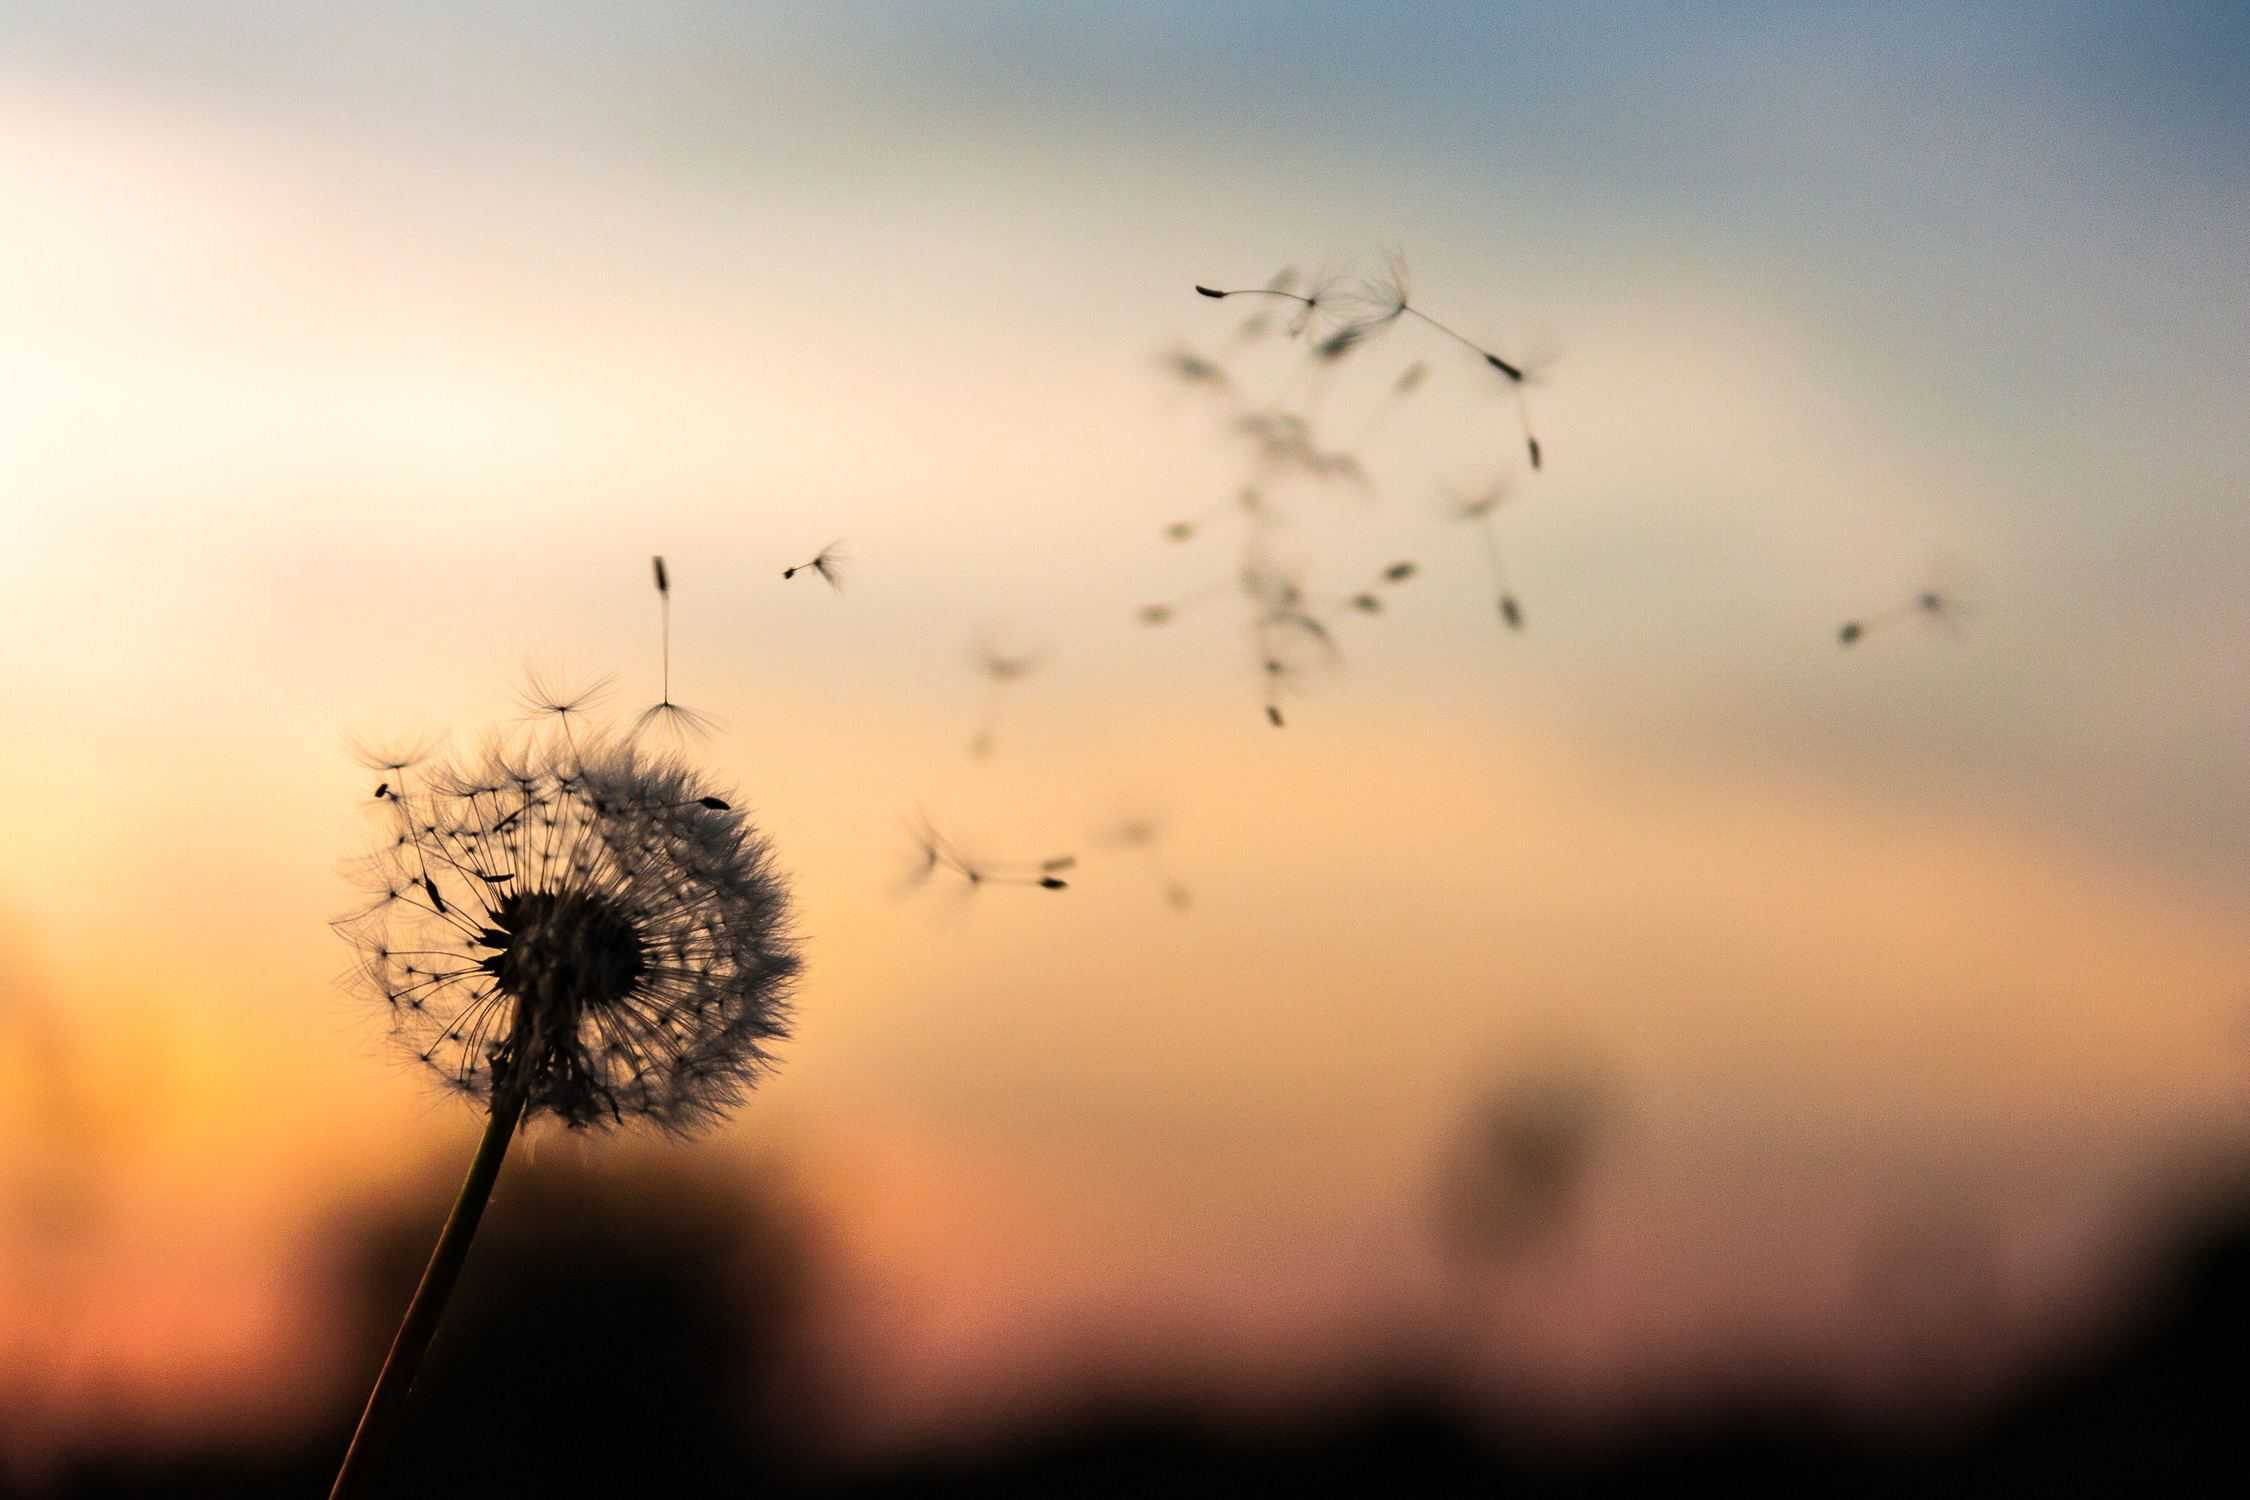 A dandelion blowing in the wind.